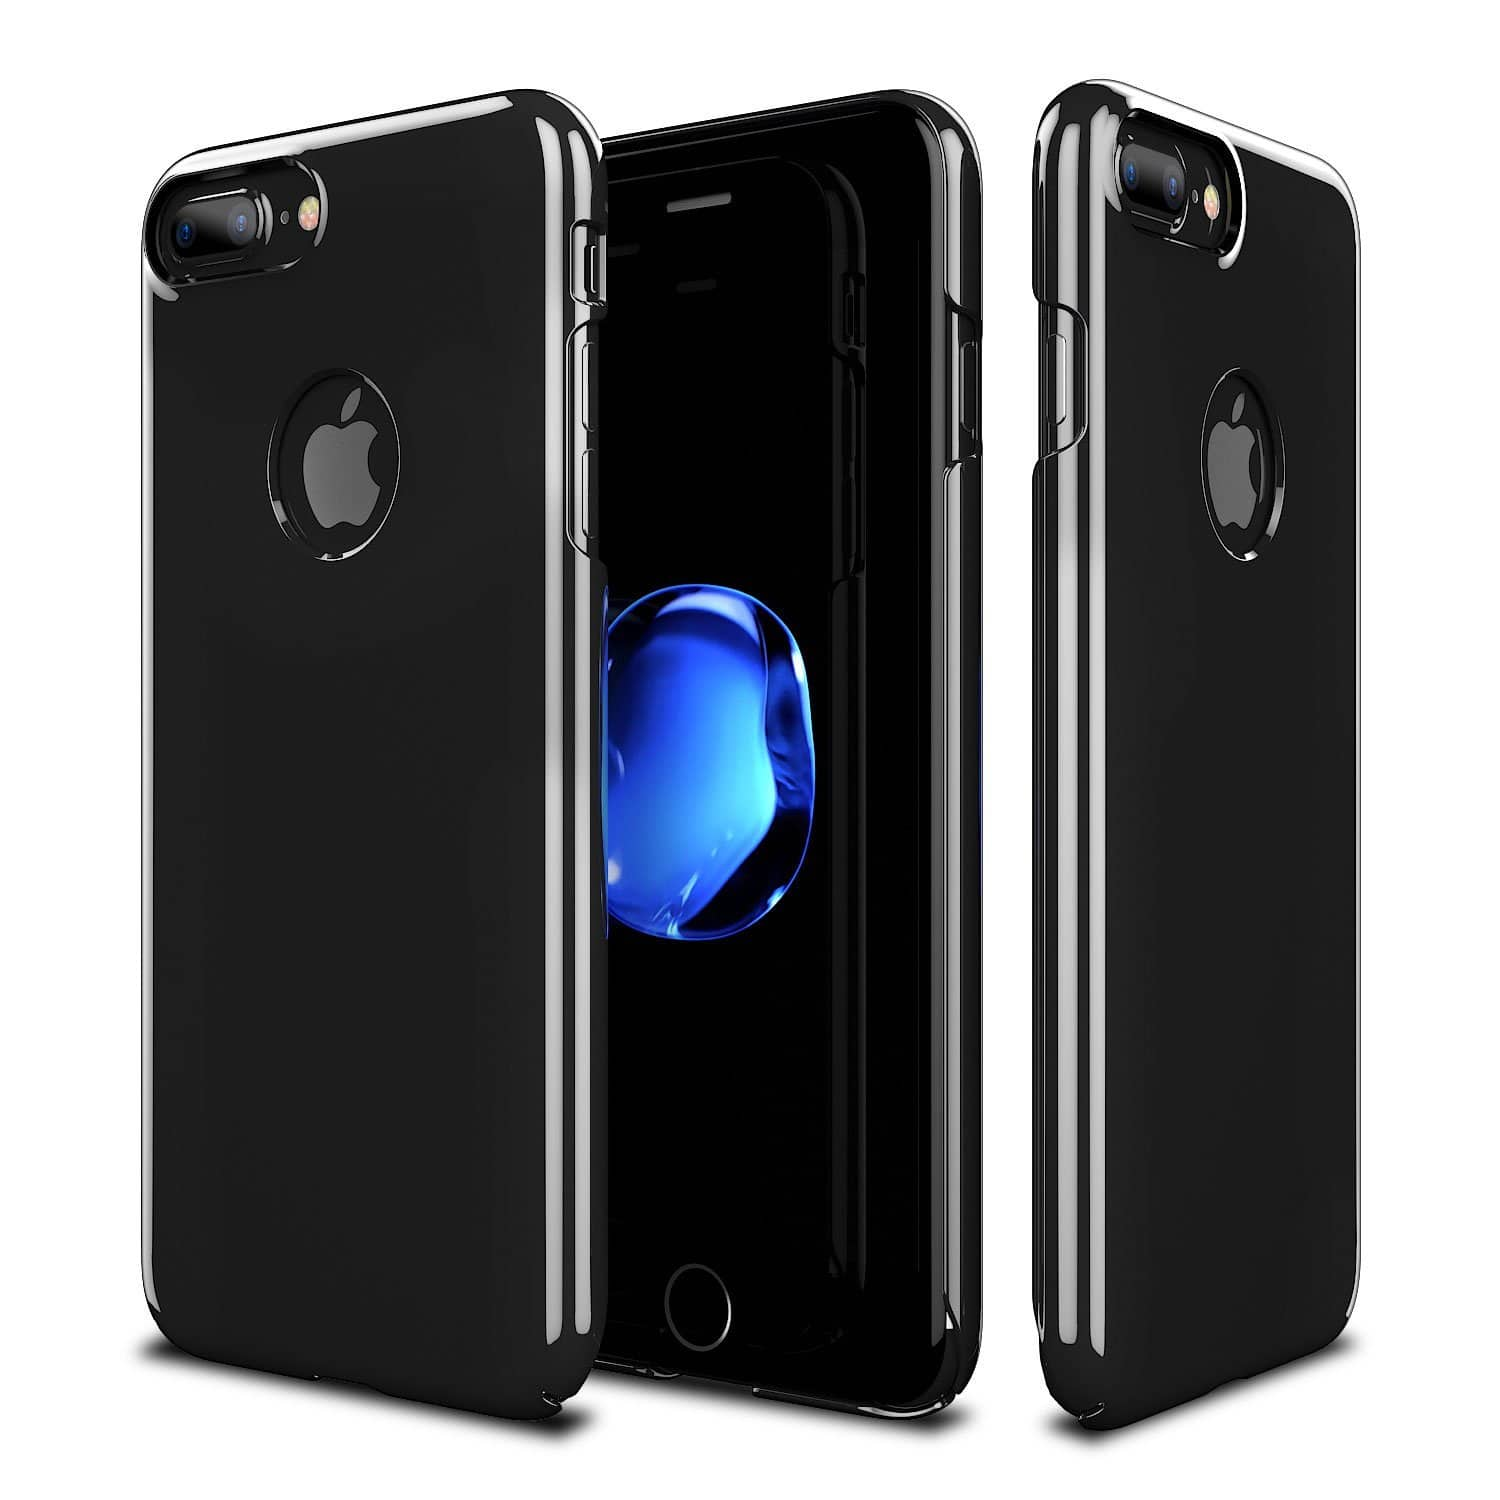 Patchworks Cases: Pure Skin Case for iPhone 7 or 7 Plus $4, ITG Pro Case for iPhone SE $4 + Free Shipping